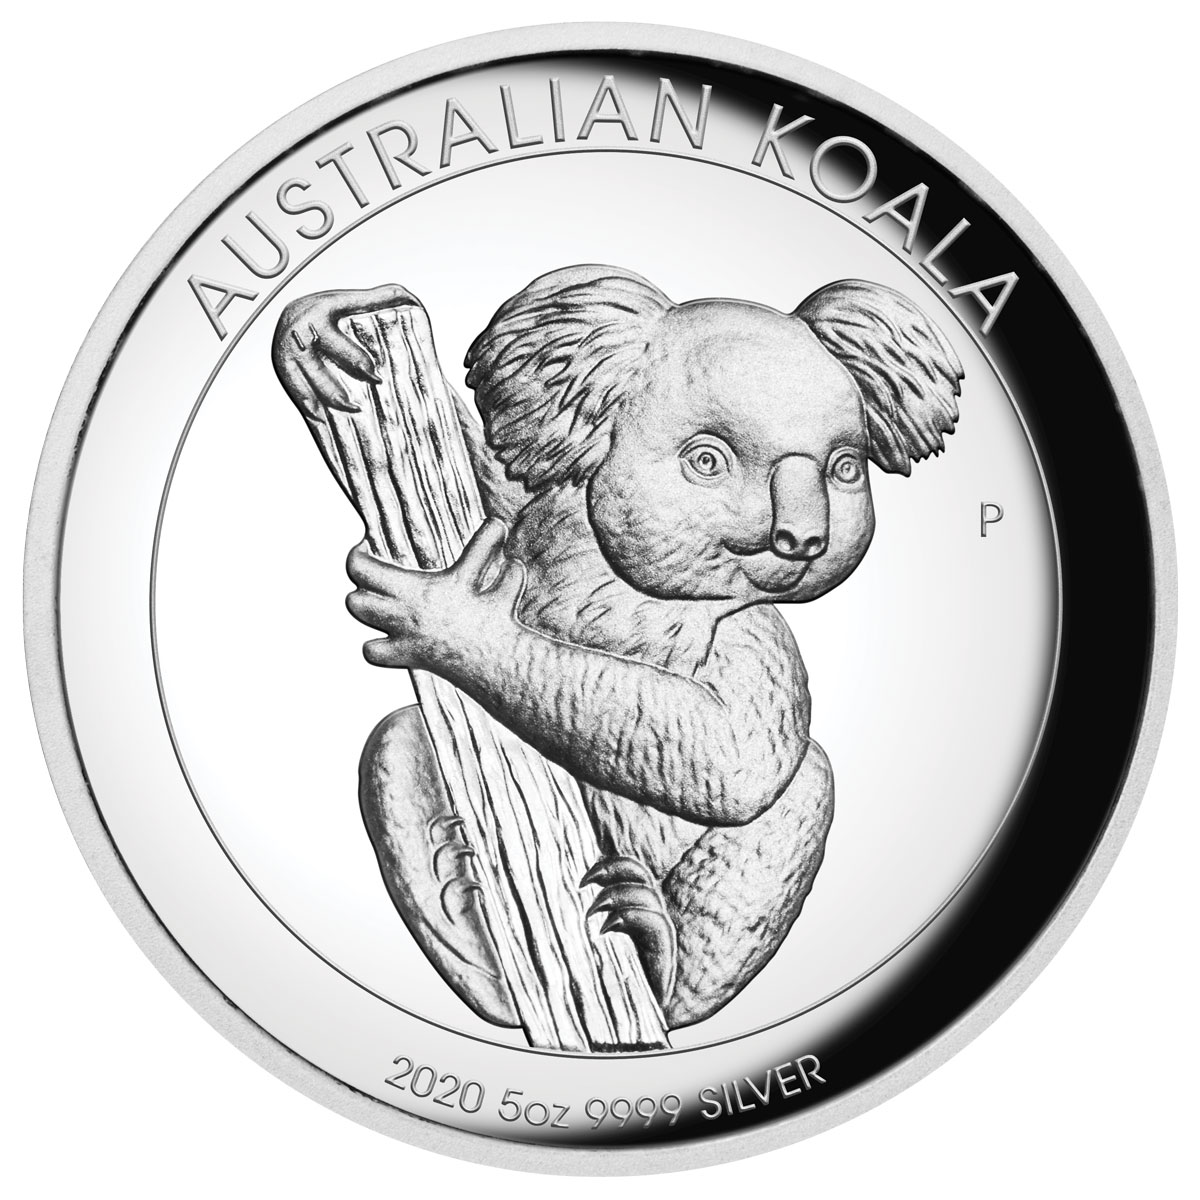 2020-P Australia 5 oz High Relief Silver Koala Proof $8 Coin GEM Proof